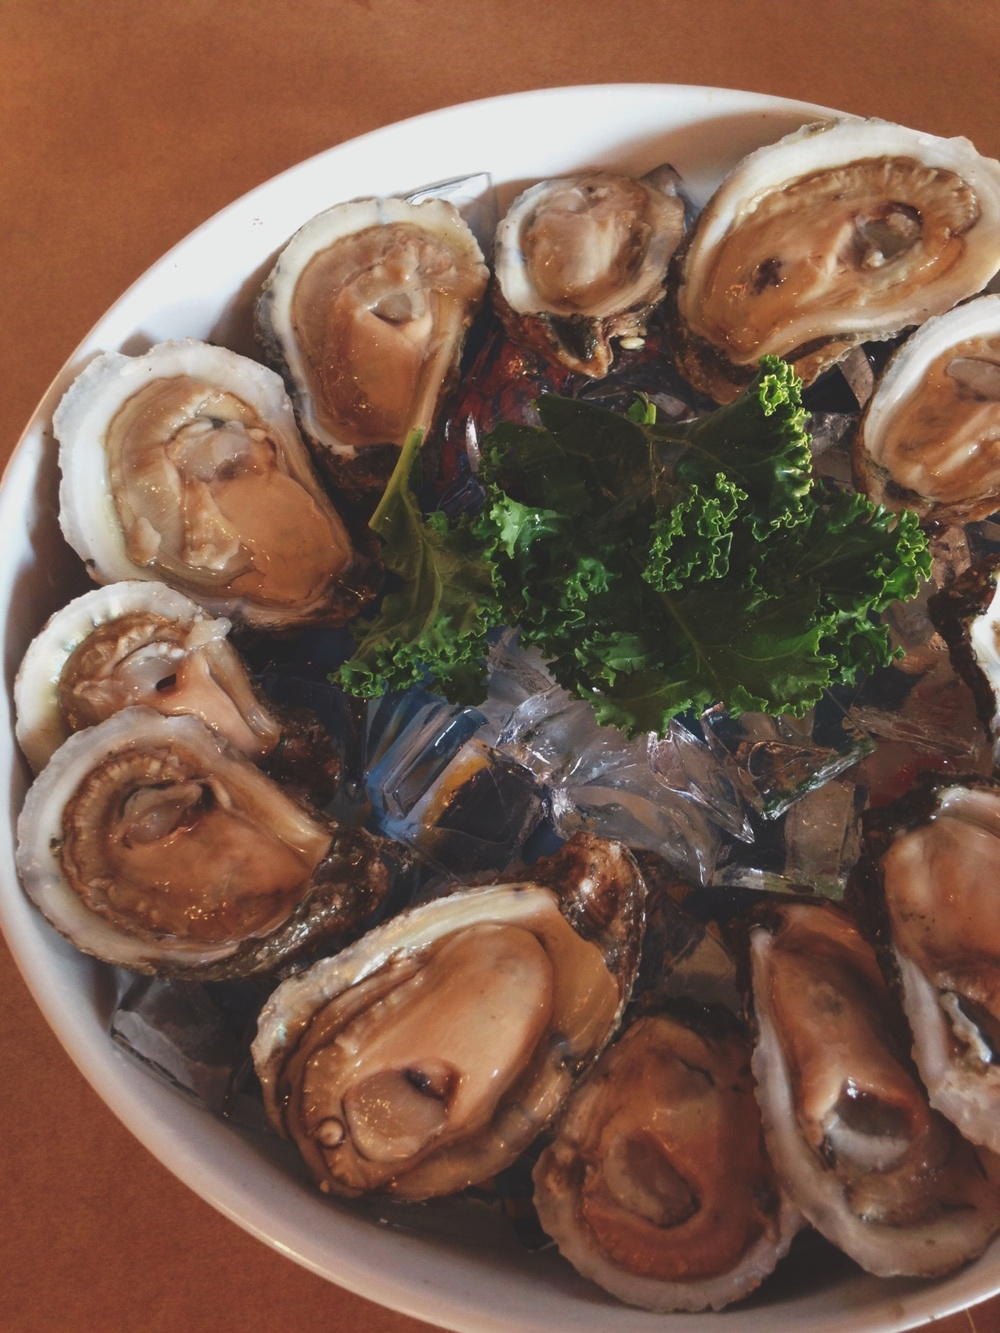 Oysters on a halfshell.